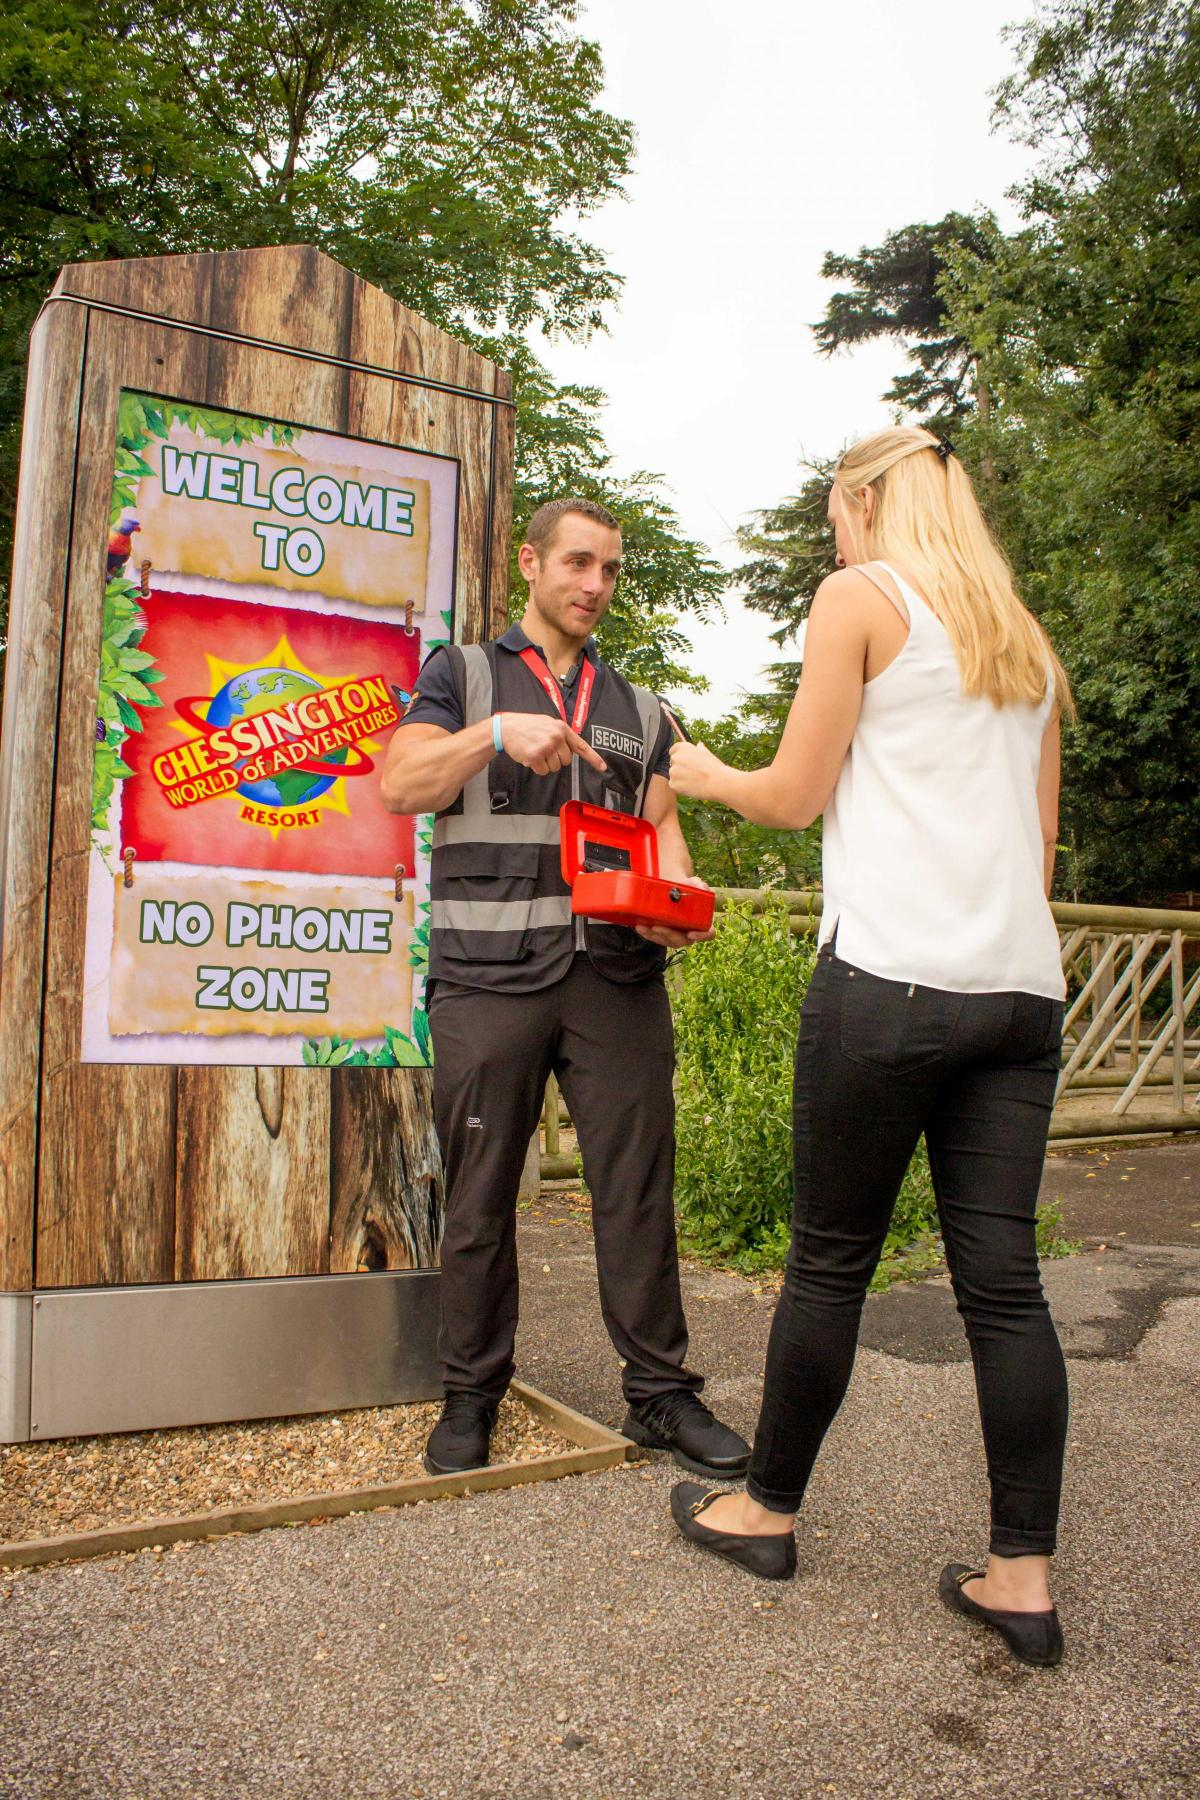 Chessington gave away free family tickets over the Bank Holiday Weekend IF parents locked their phones away for the day!